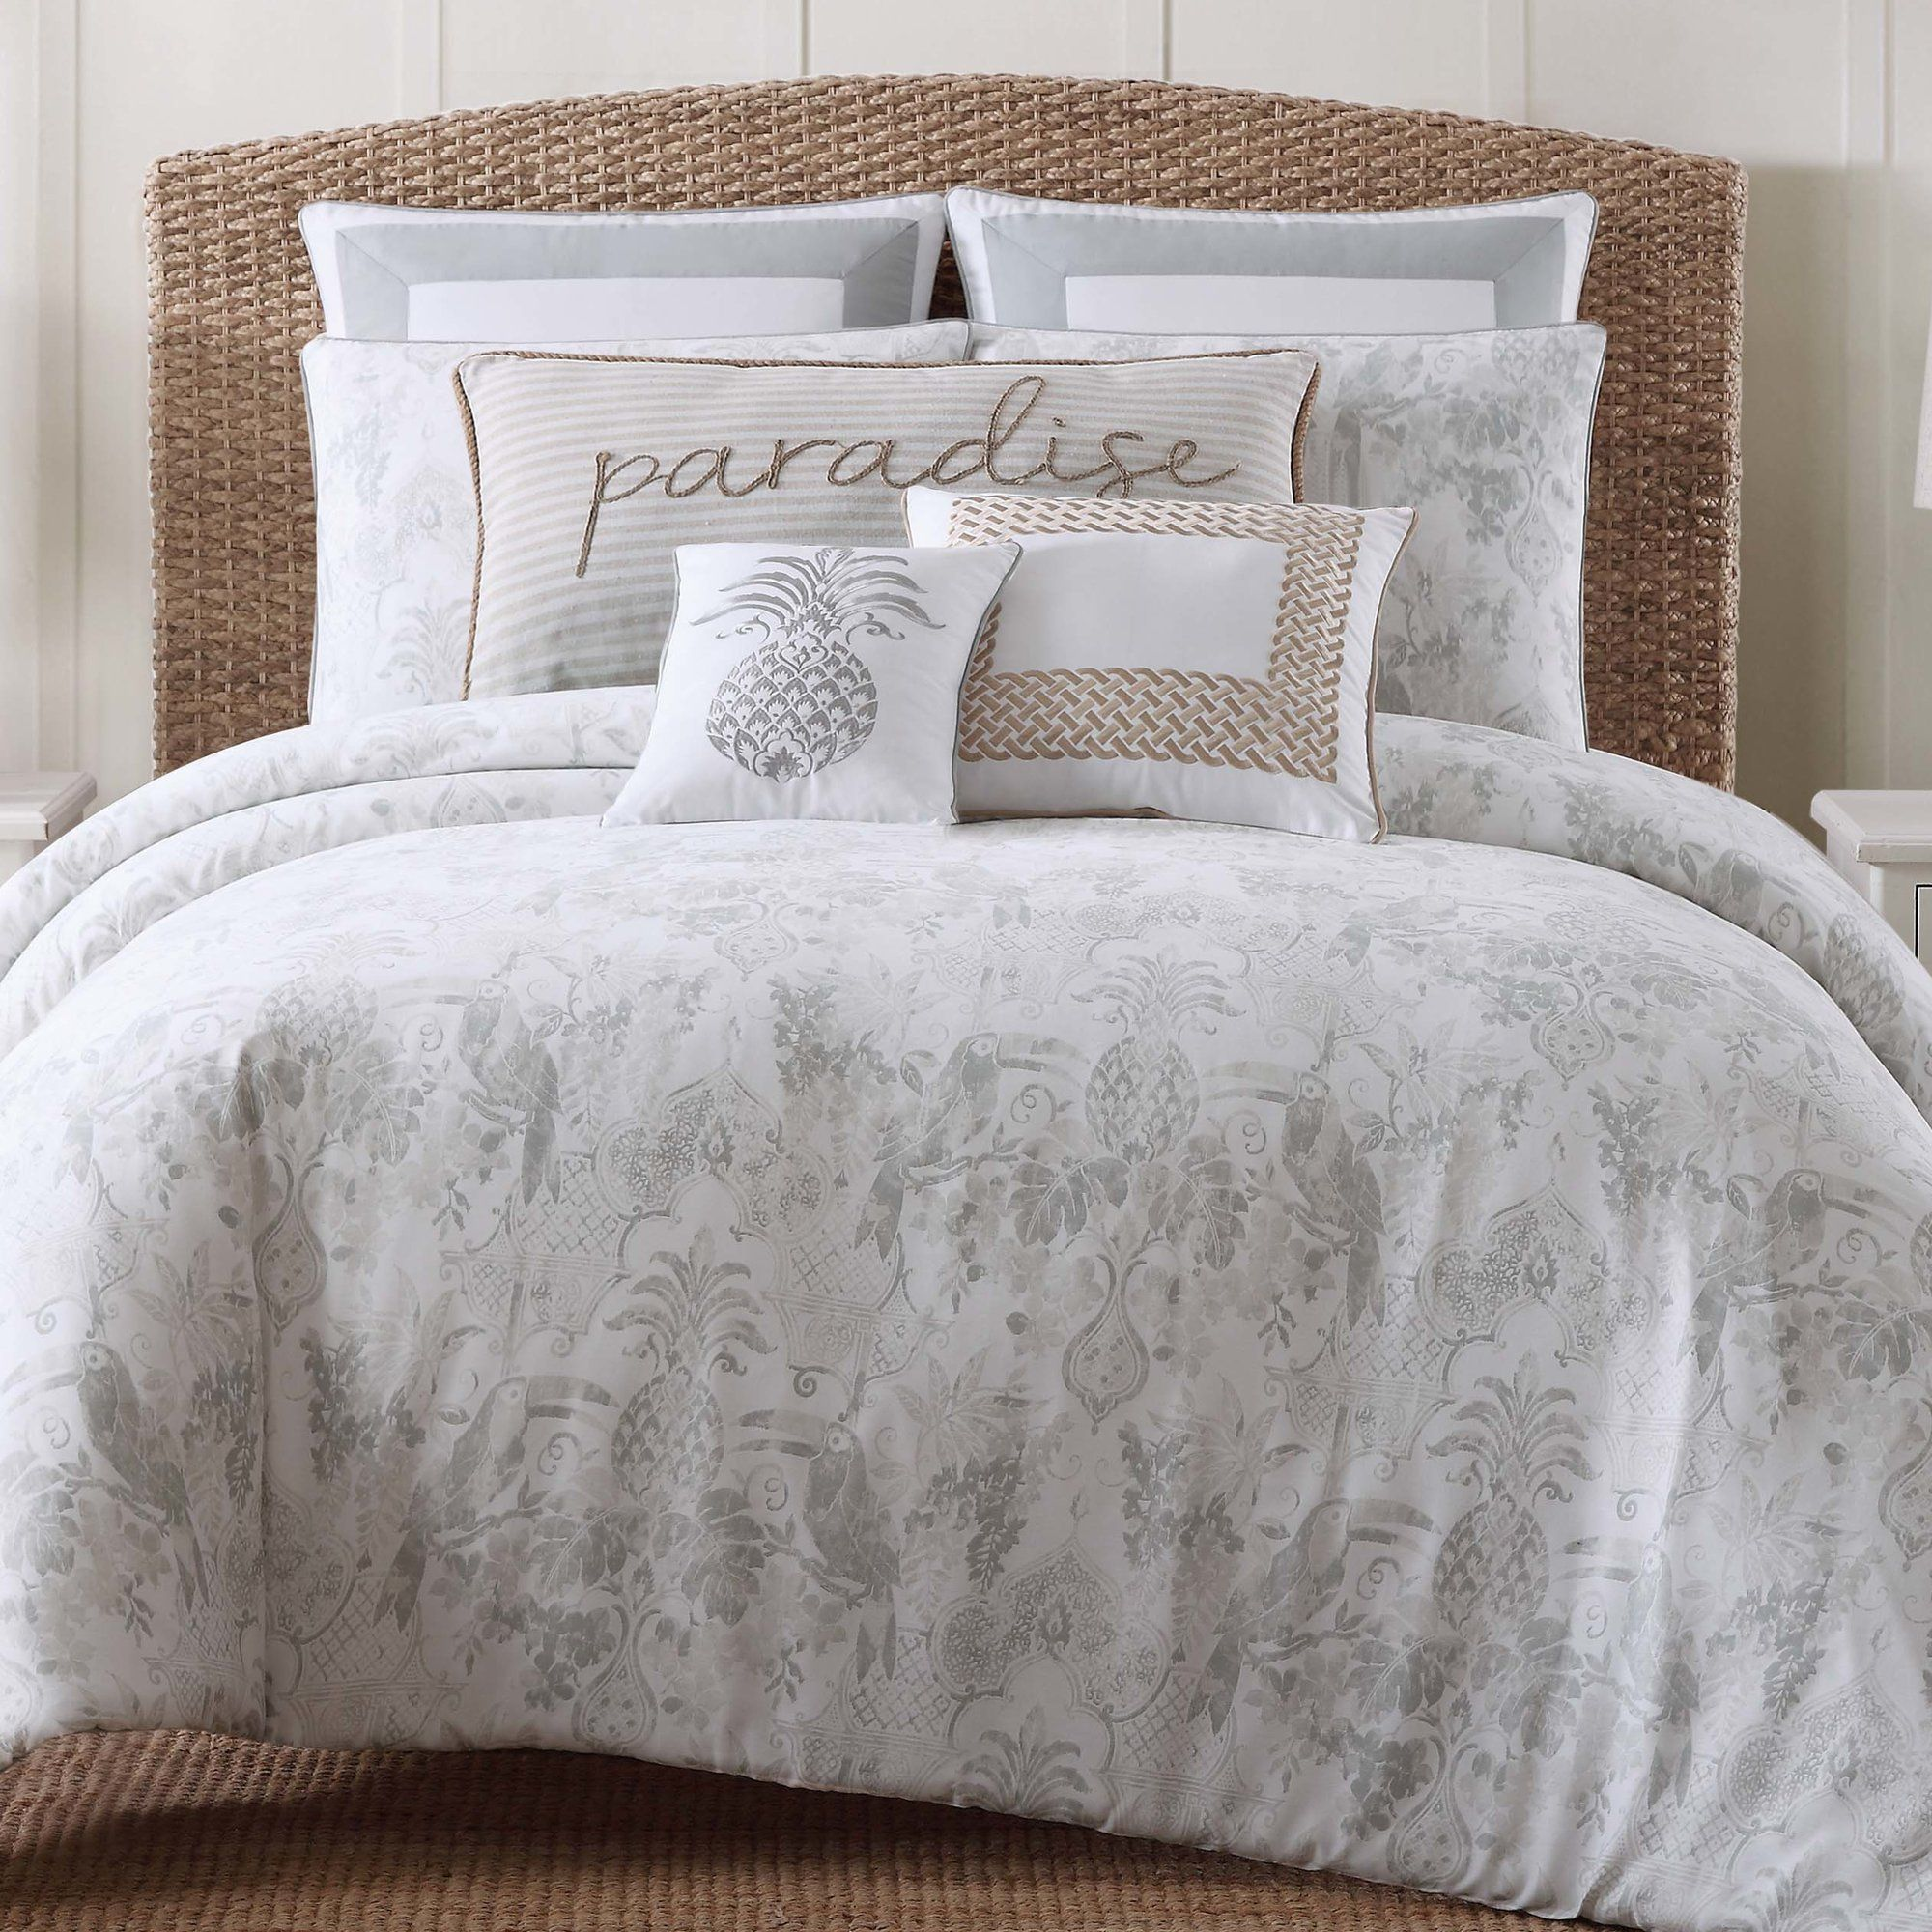 swanky king duvet queen group duvets online beyond twin california and covers paisley cover inc ikea bath costello sets cal kohls comforter comforters lummy champagne